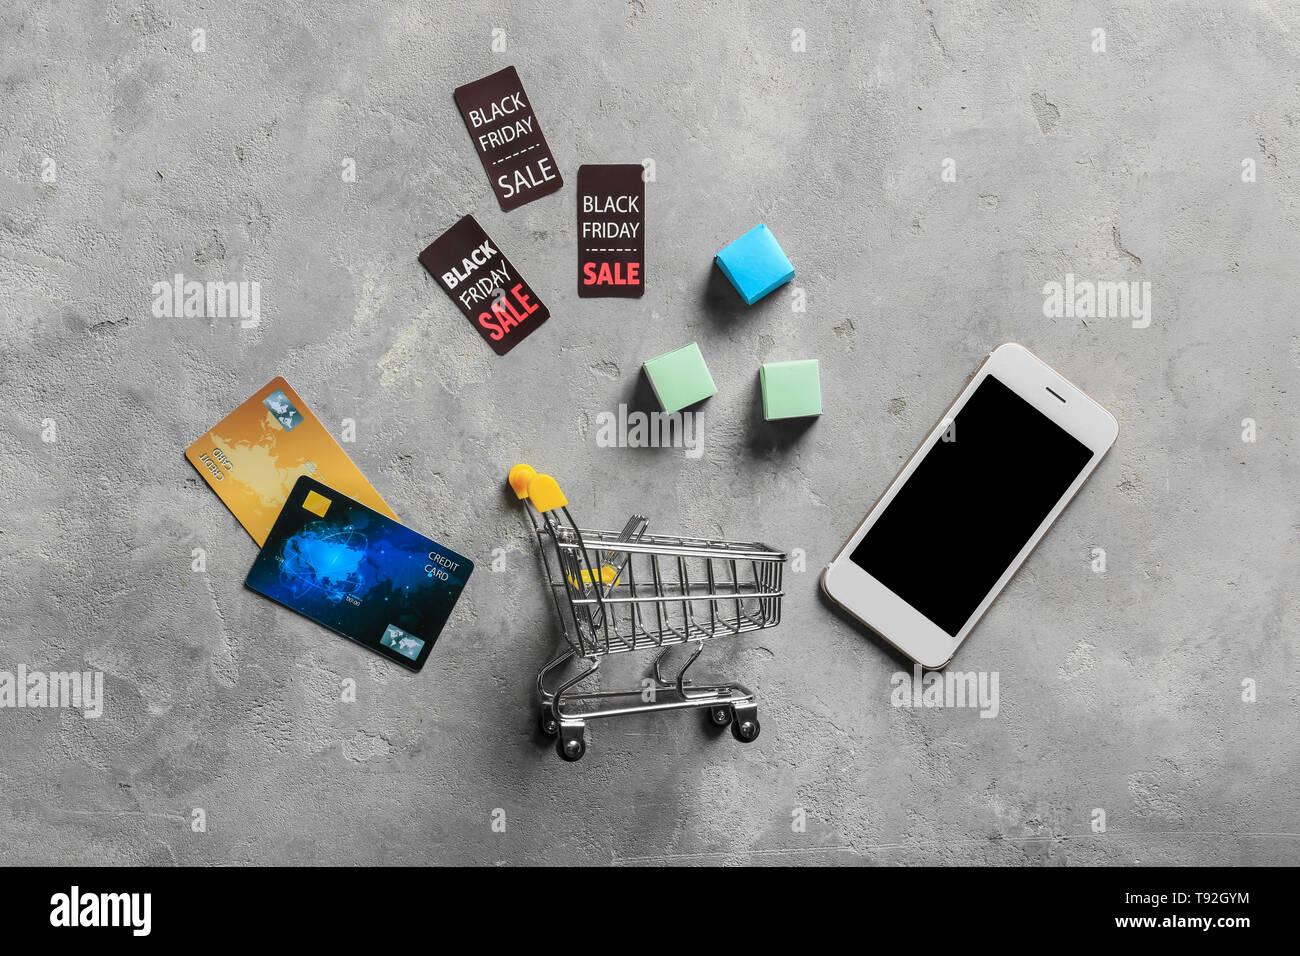 21a97a298d4 Trolley Money Stock Photos   Trolley Money Stock Images - Page 2 - Alamy